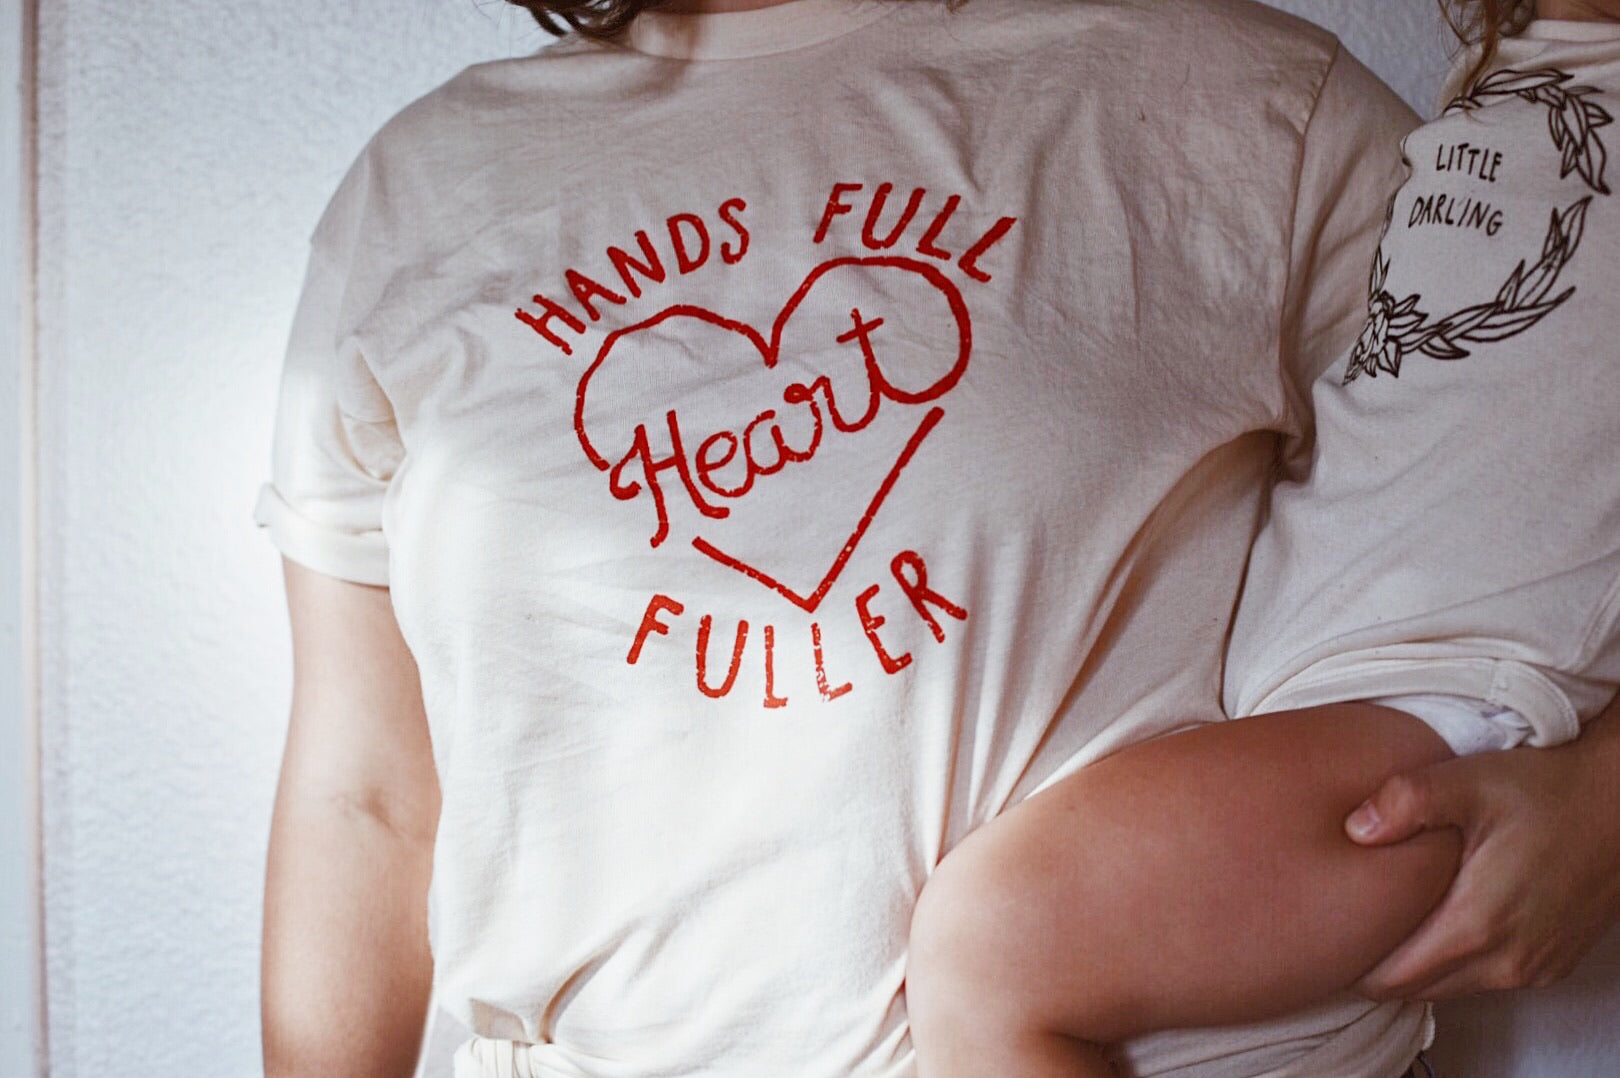 Hands Full, Heart Fuller